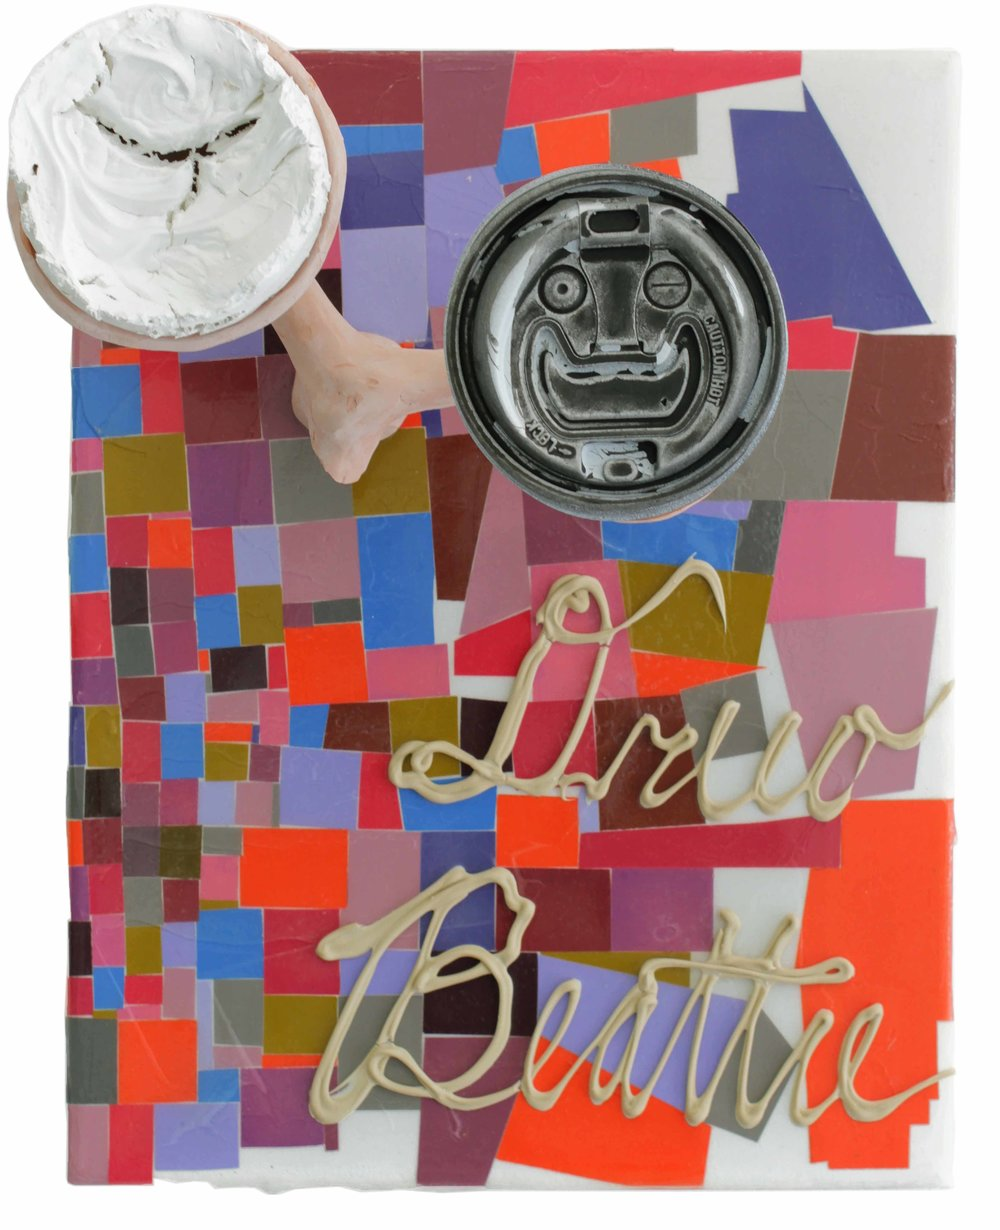 Drew Beattie  Dreetle   2012 acrylic, coffee lid, ceramic, epoxy, Liquid Nails, and cut papers on canvas 14 x 11 inches